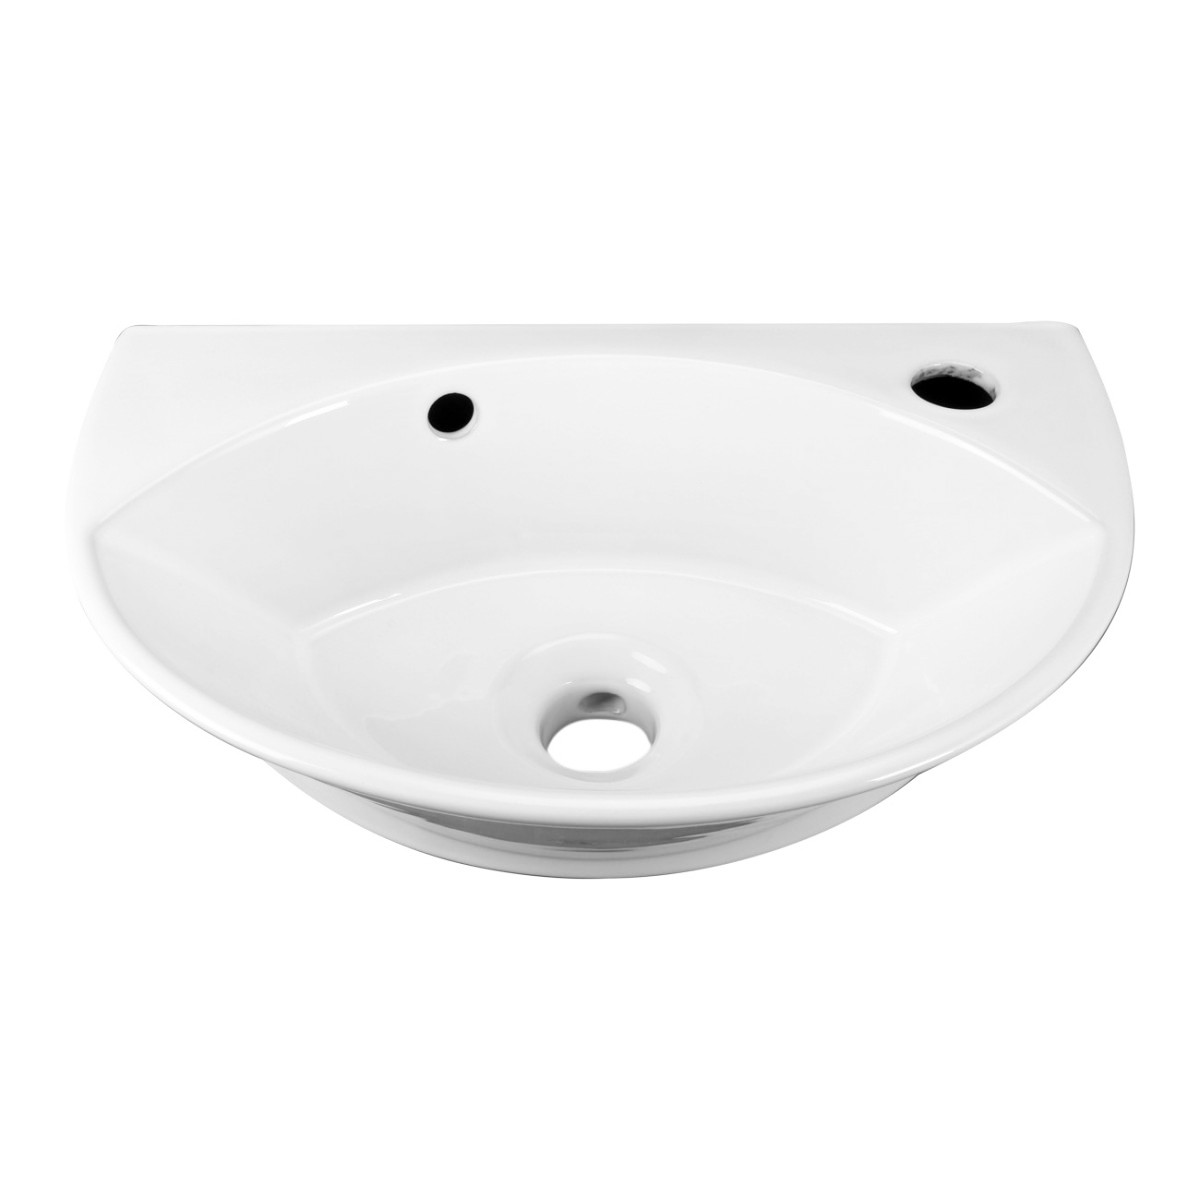 2 Wall Mount Porcelain Sink Single Hole Faucet NOT INCLUDED Whitehaus WH1102RWH Isabella Alternative ALFI AB105 Alternative ceramic diy Whitehaus LU004WH Alternative porcelain